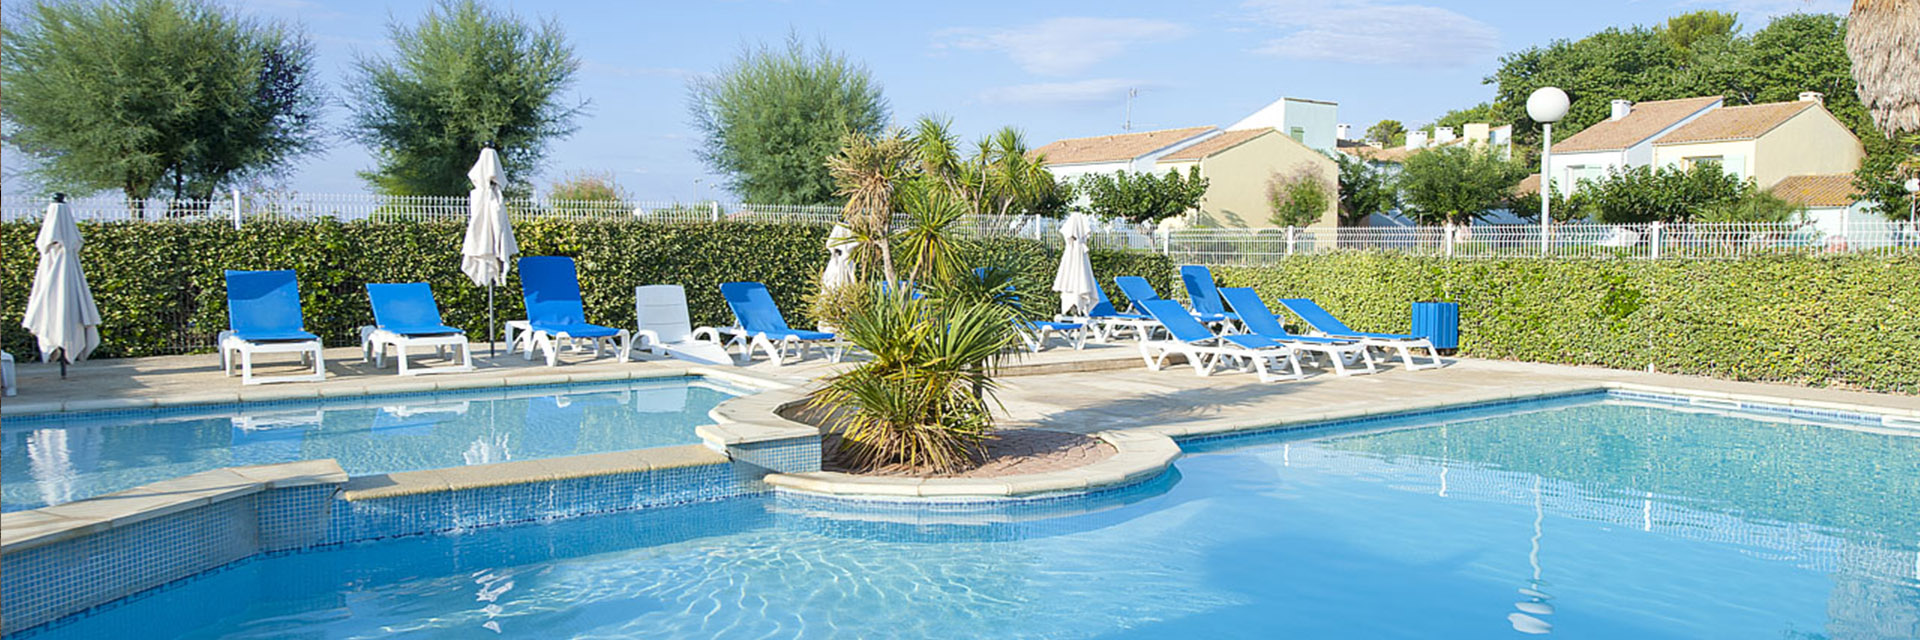 Village_club_vacances_mediterranee-sud-est-village-club-thalasse-piscine